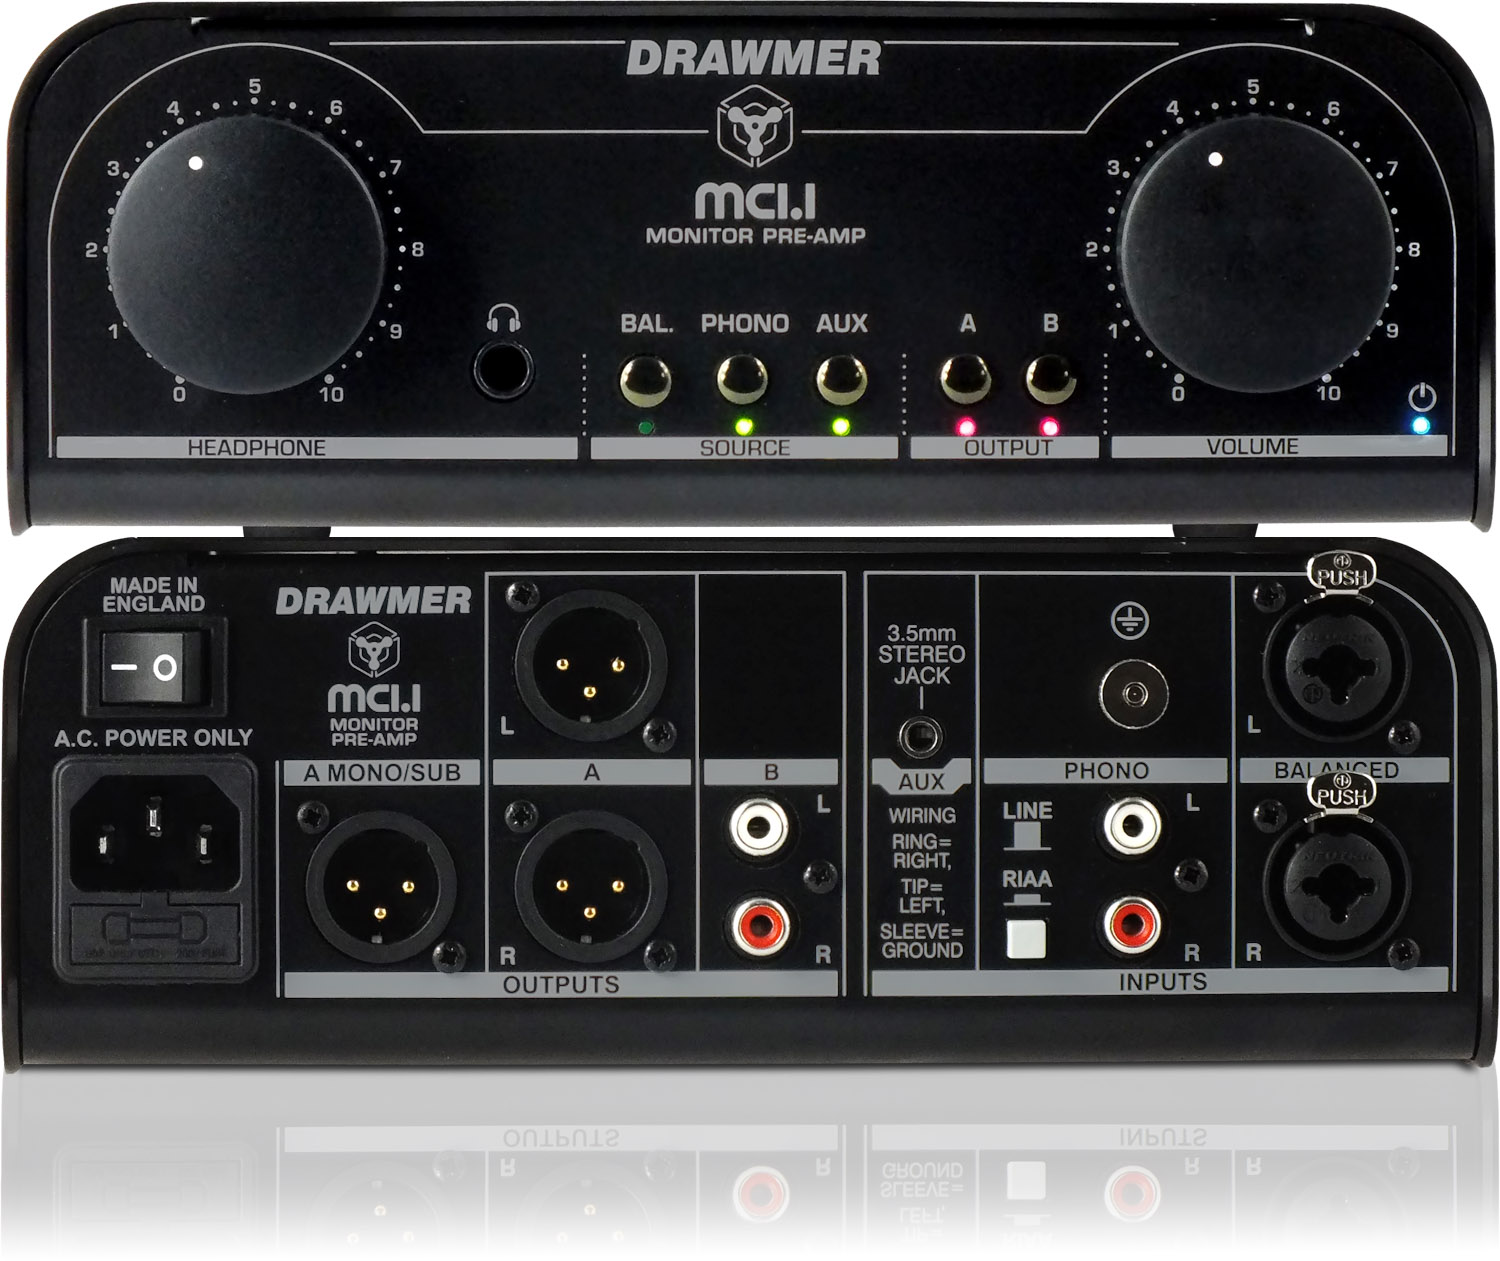 Drawmer Electronics Mc11 Monitor Preamp Vacuum Tube Headphone Amplifier Circuit Diagram See A Larger Image Of The